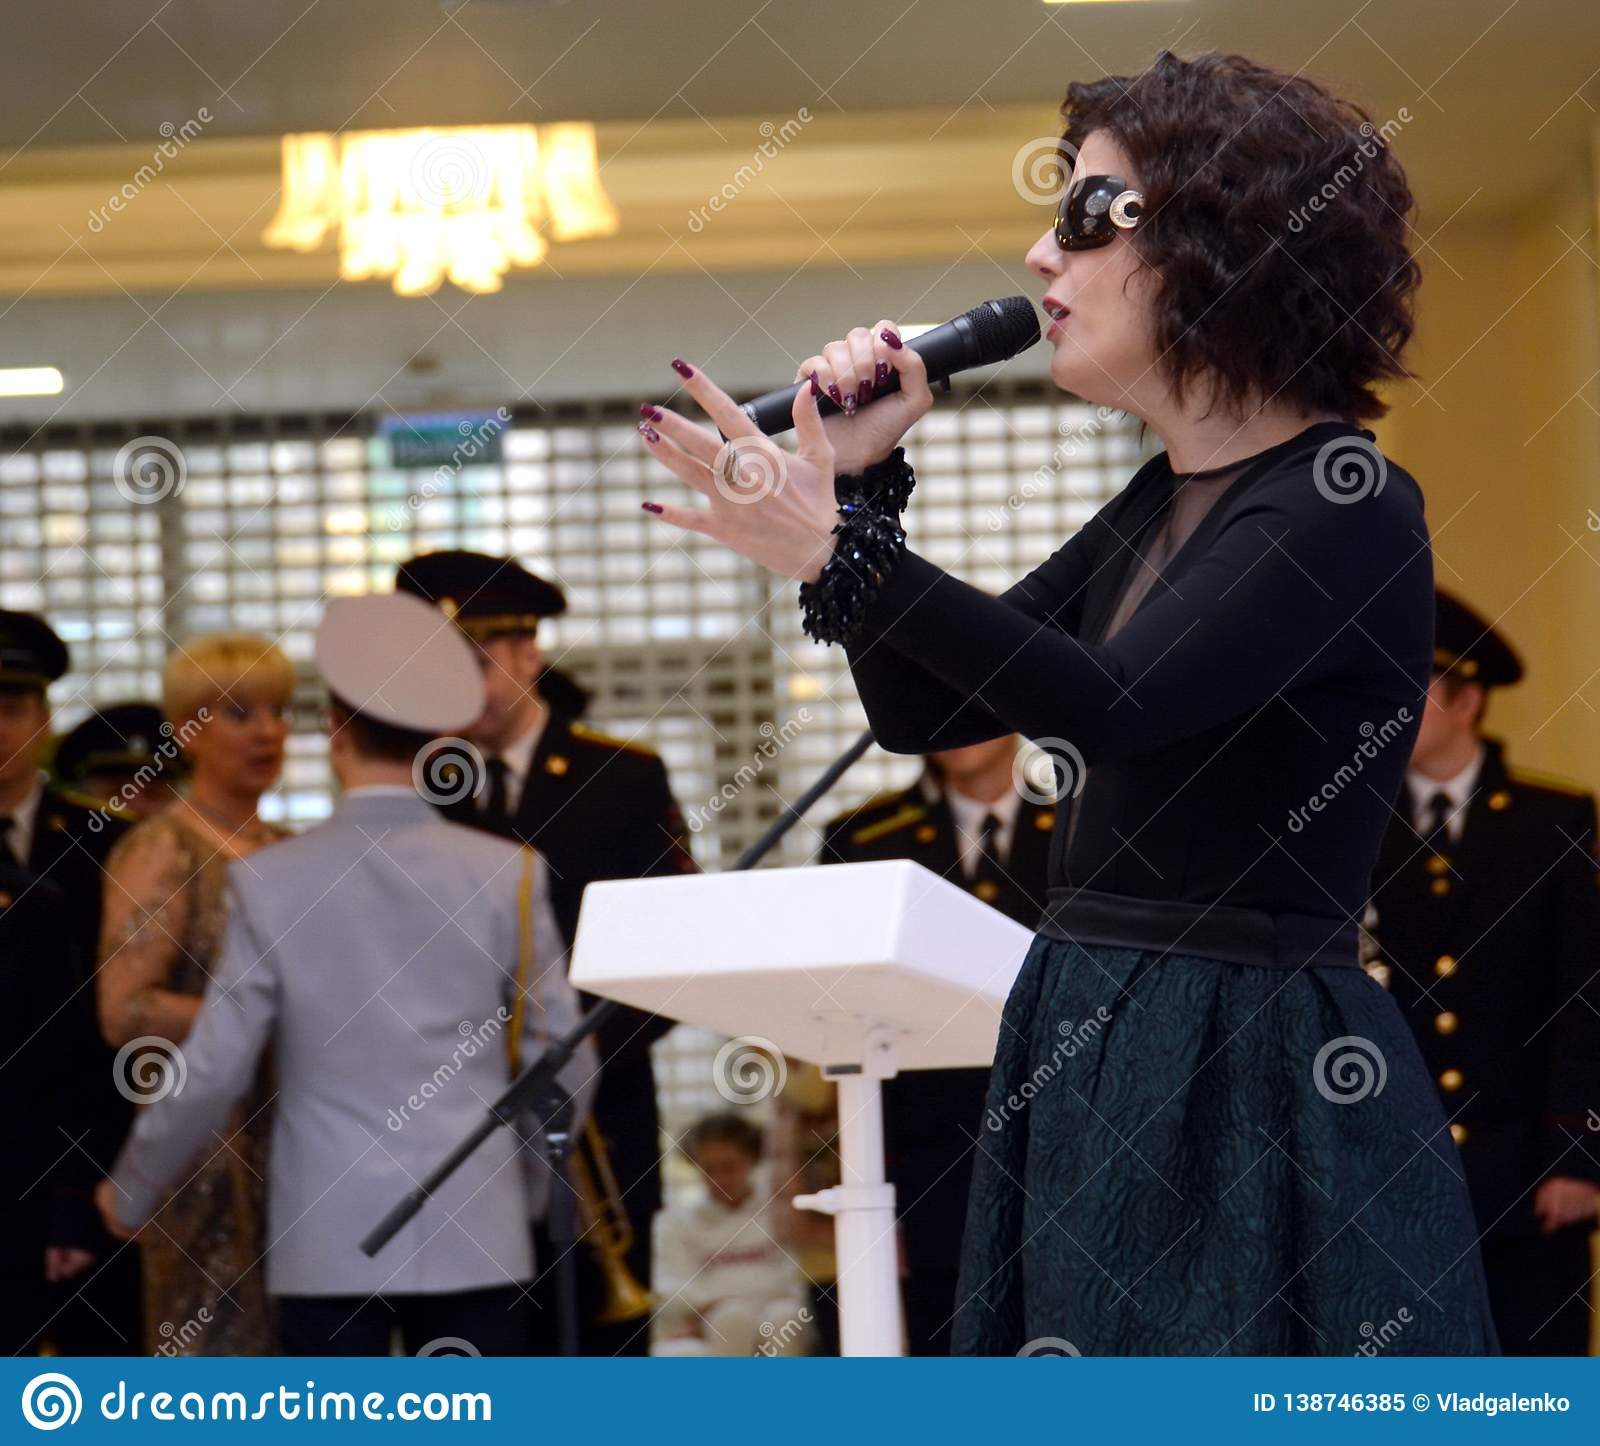 Singer Diana Gurtskaya in the Russian Federation Council of the Federal Assembly